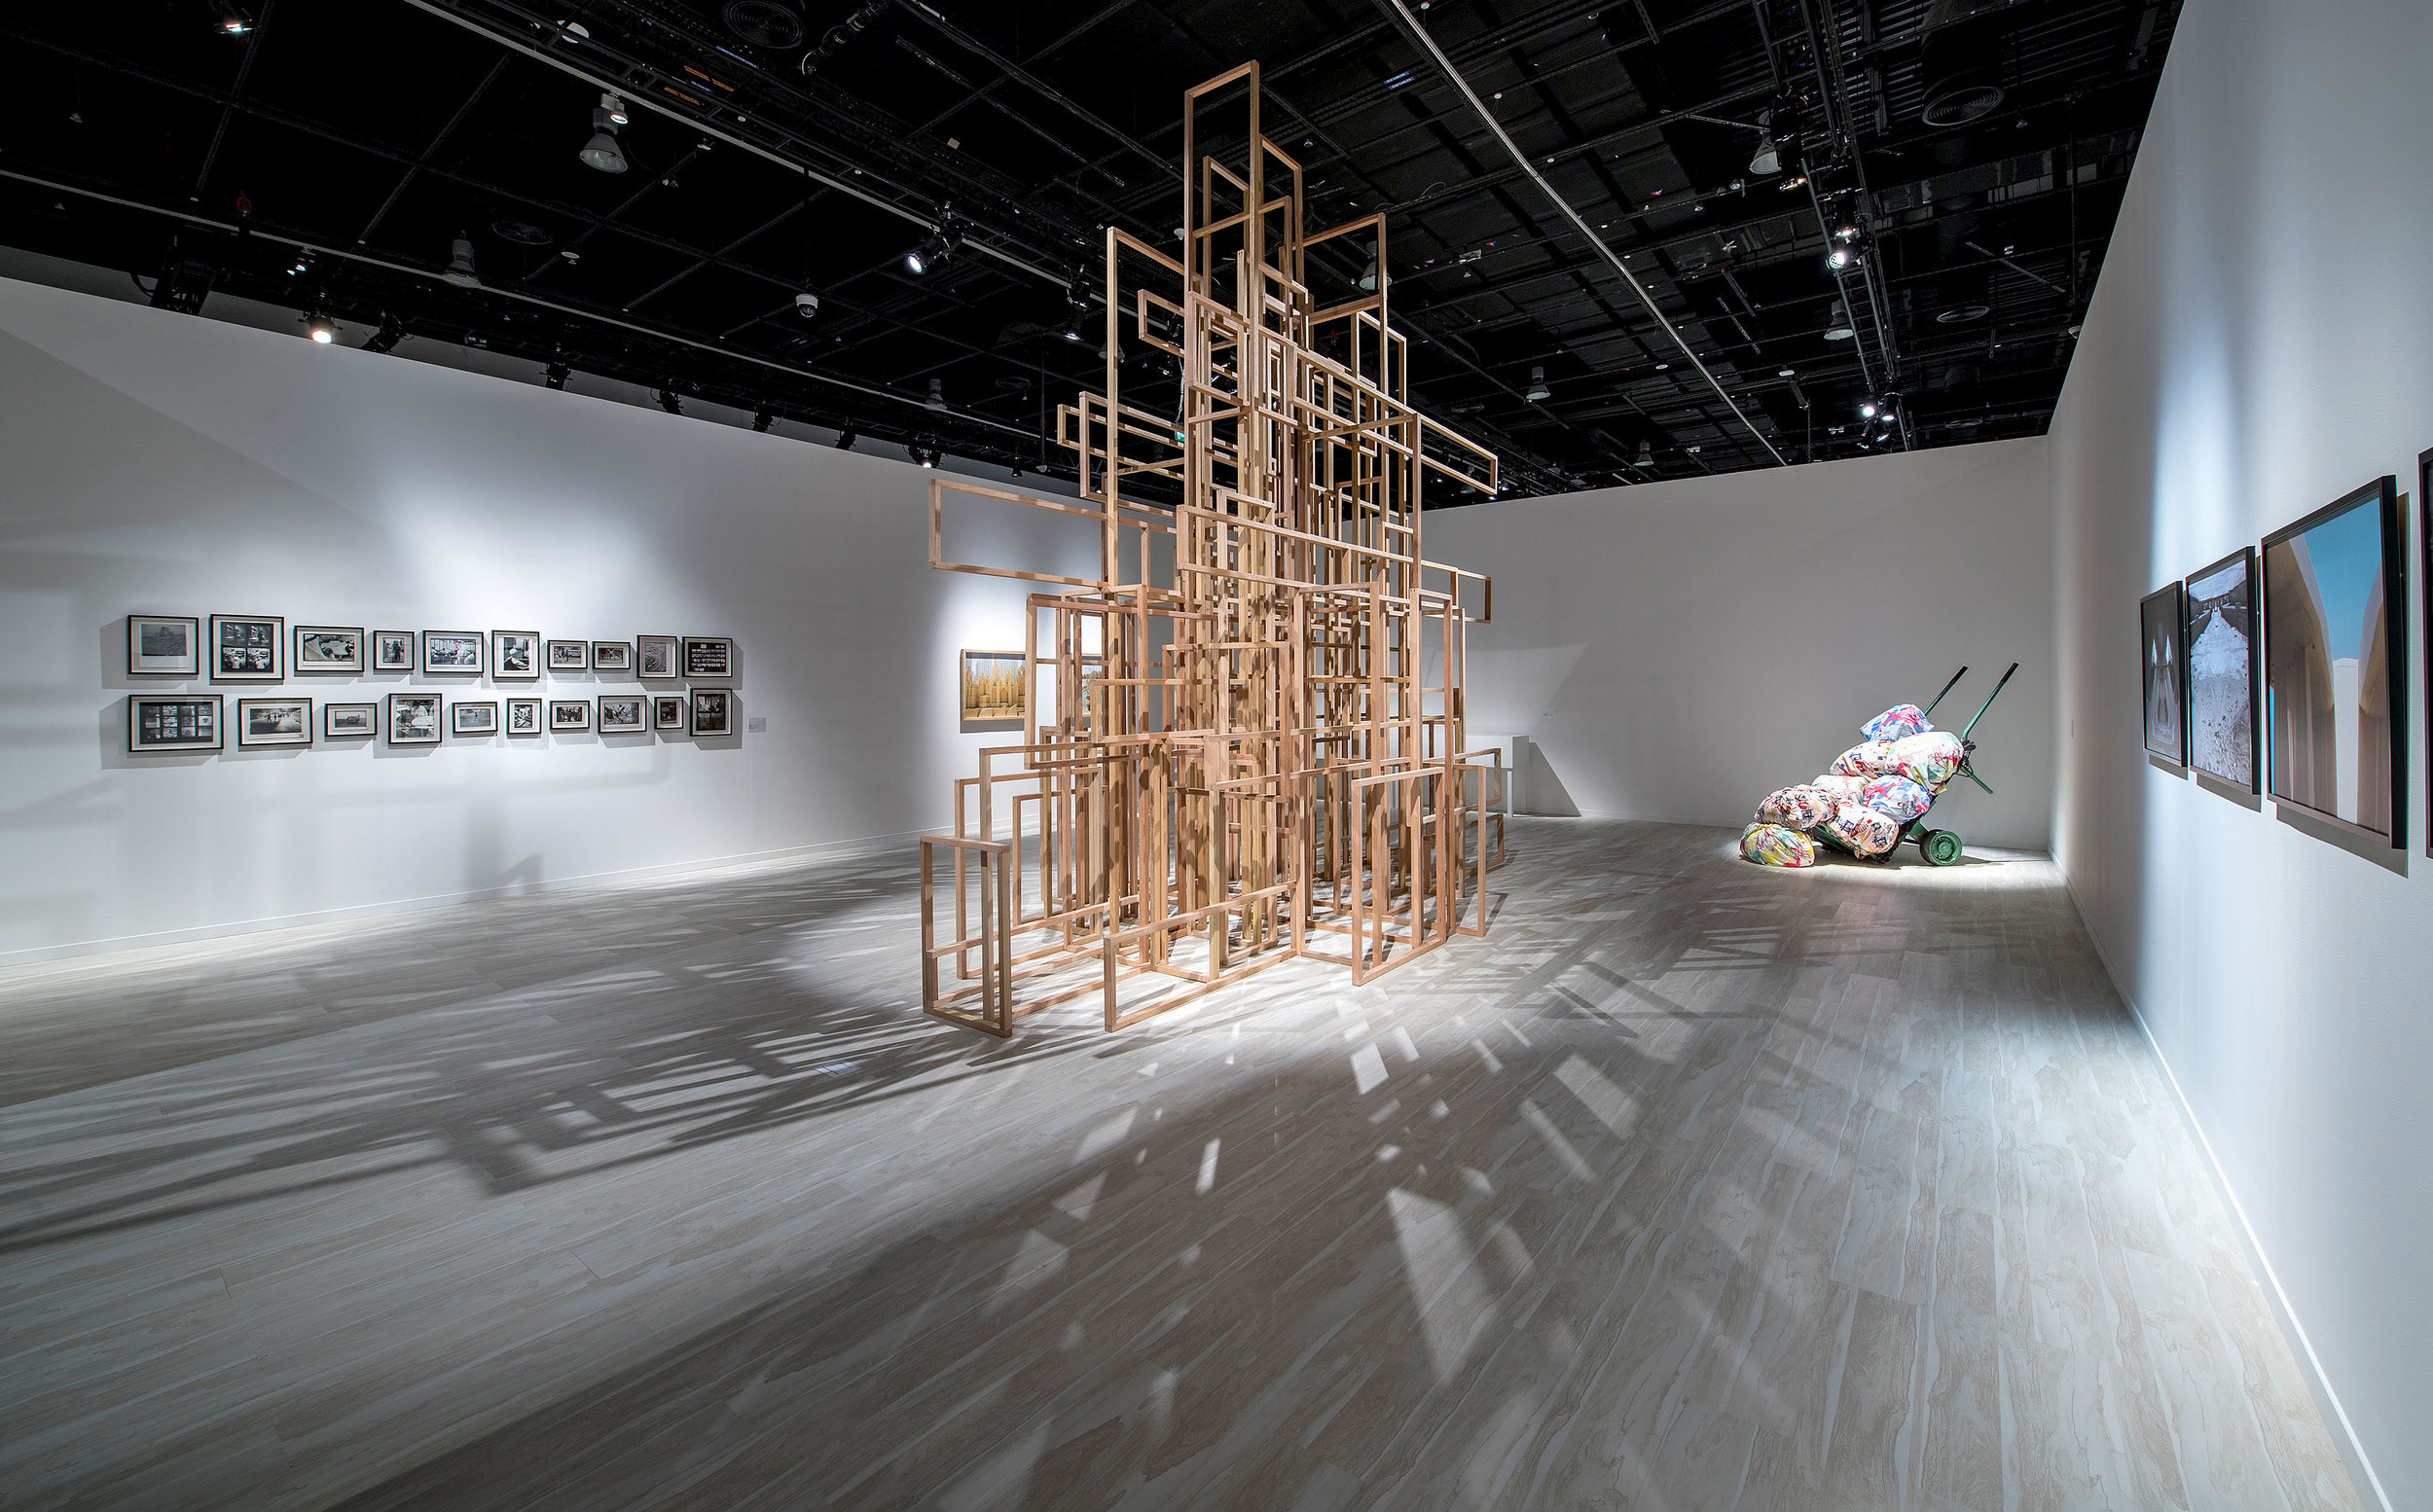 Layla Juma's Settlement (2017) stands amid other works from ADMAF's collection of leading Emirati artists. Installed nstalled in Manarat Al Saadiyat, February 2018 as part of  From Barcelona to Abu Dhabi - Works from MACBA in dialogue with the Emirates. © Courtesy of Abu Dhabi Festival